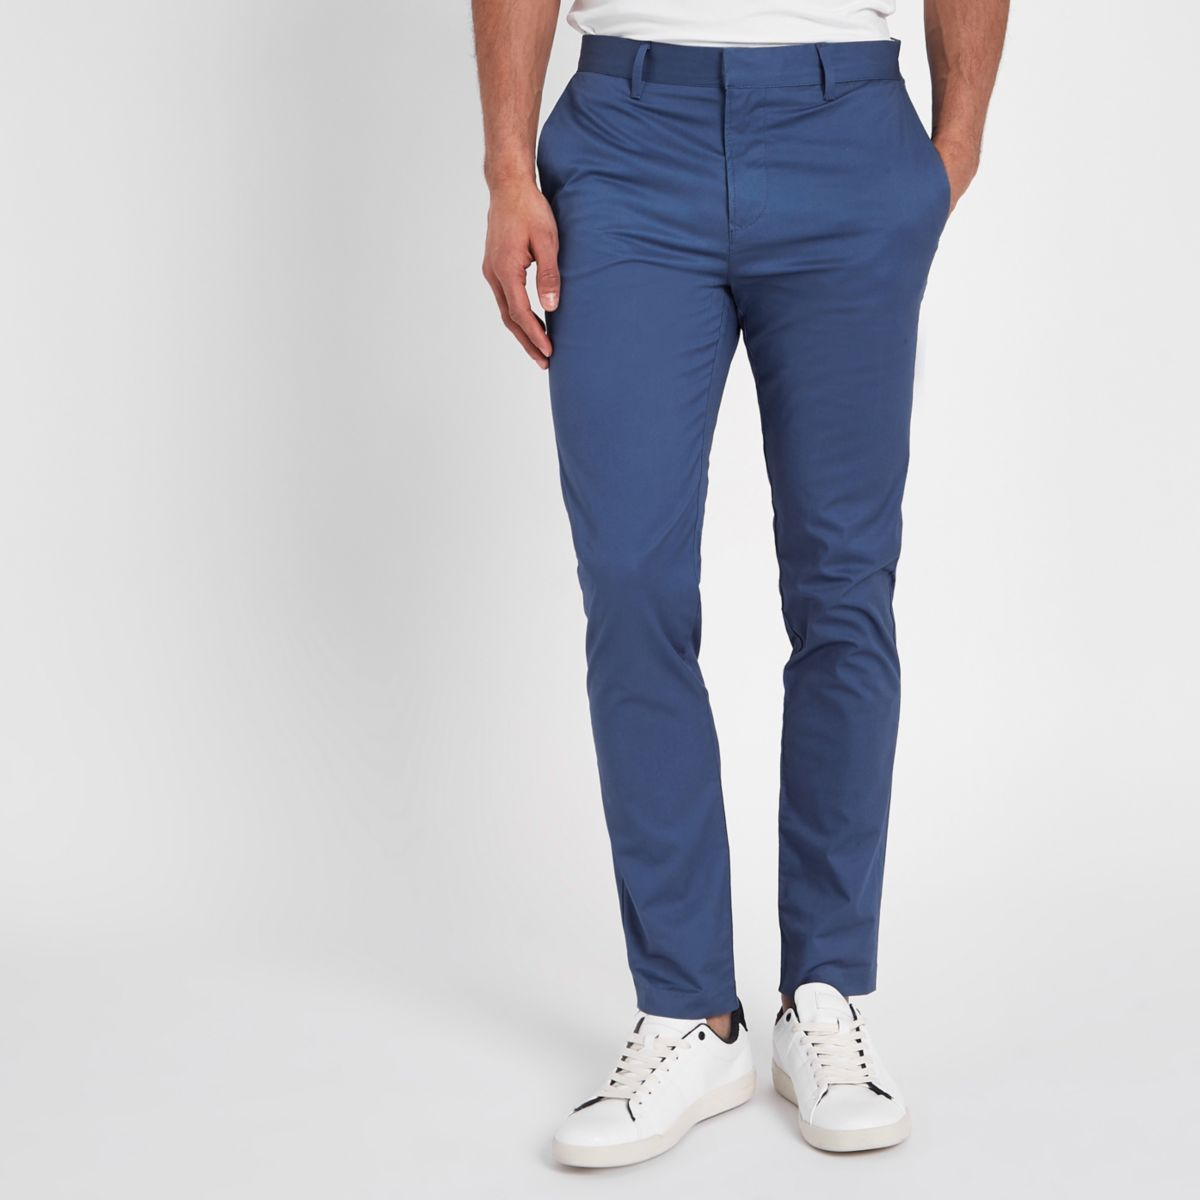 Blue skinny chino pants